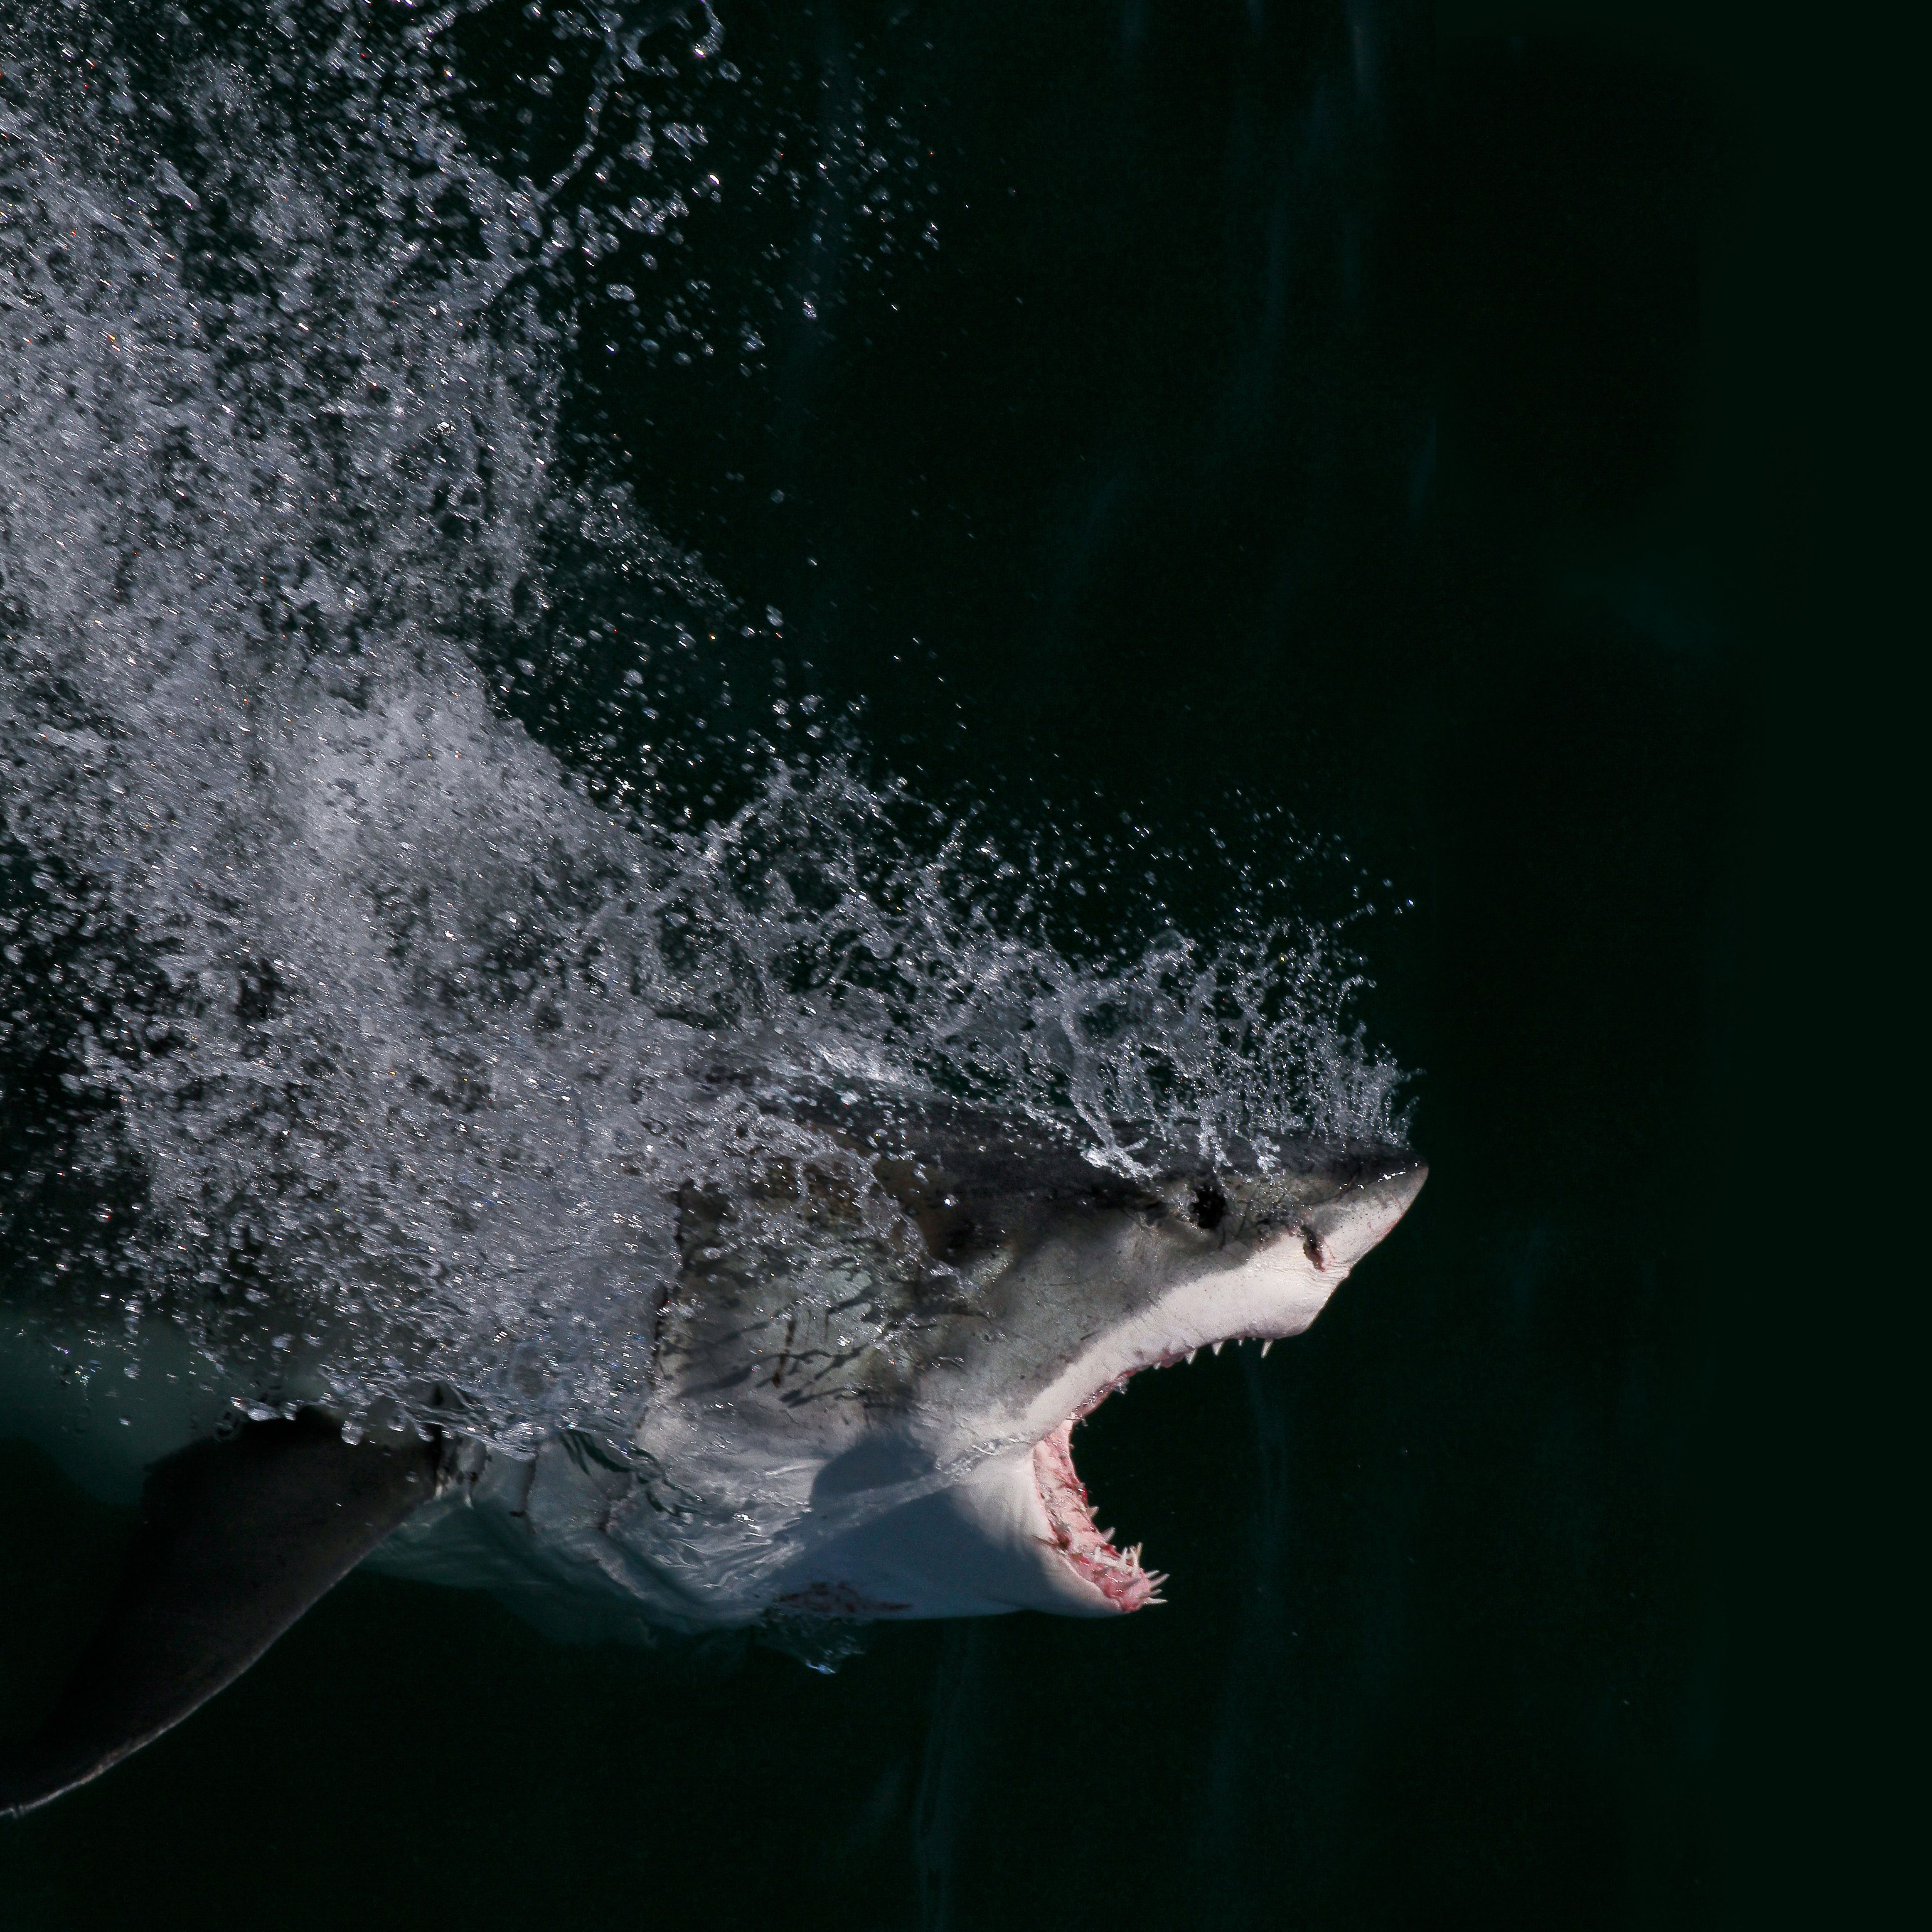 The great white scythes through the water with its jaws open wide